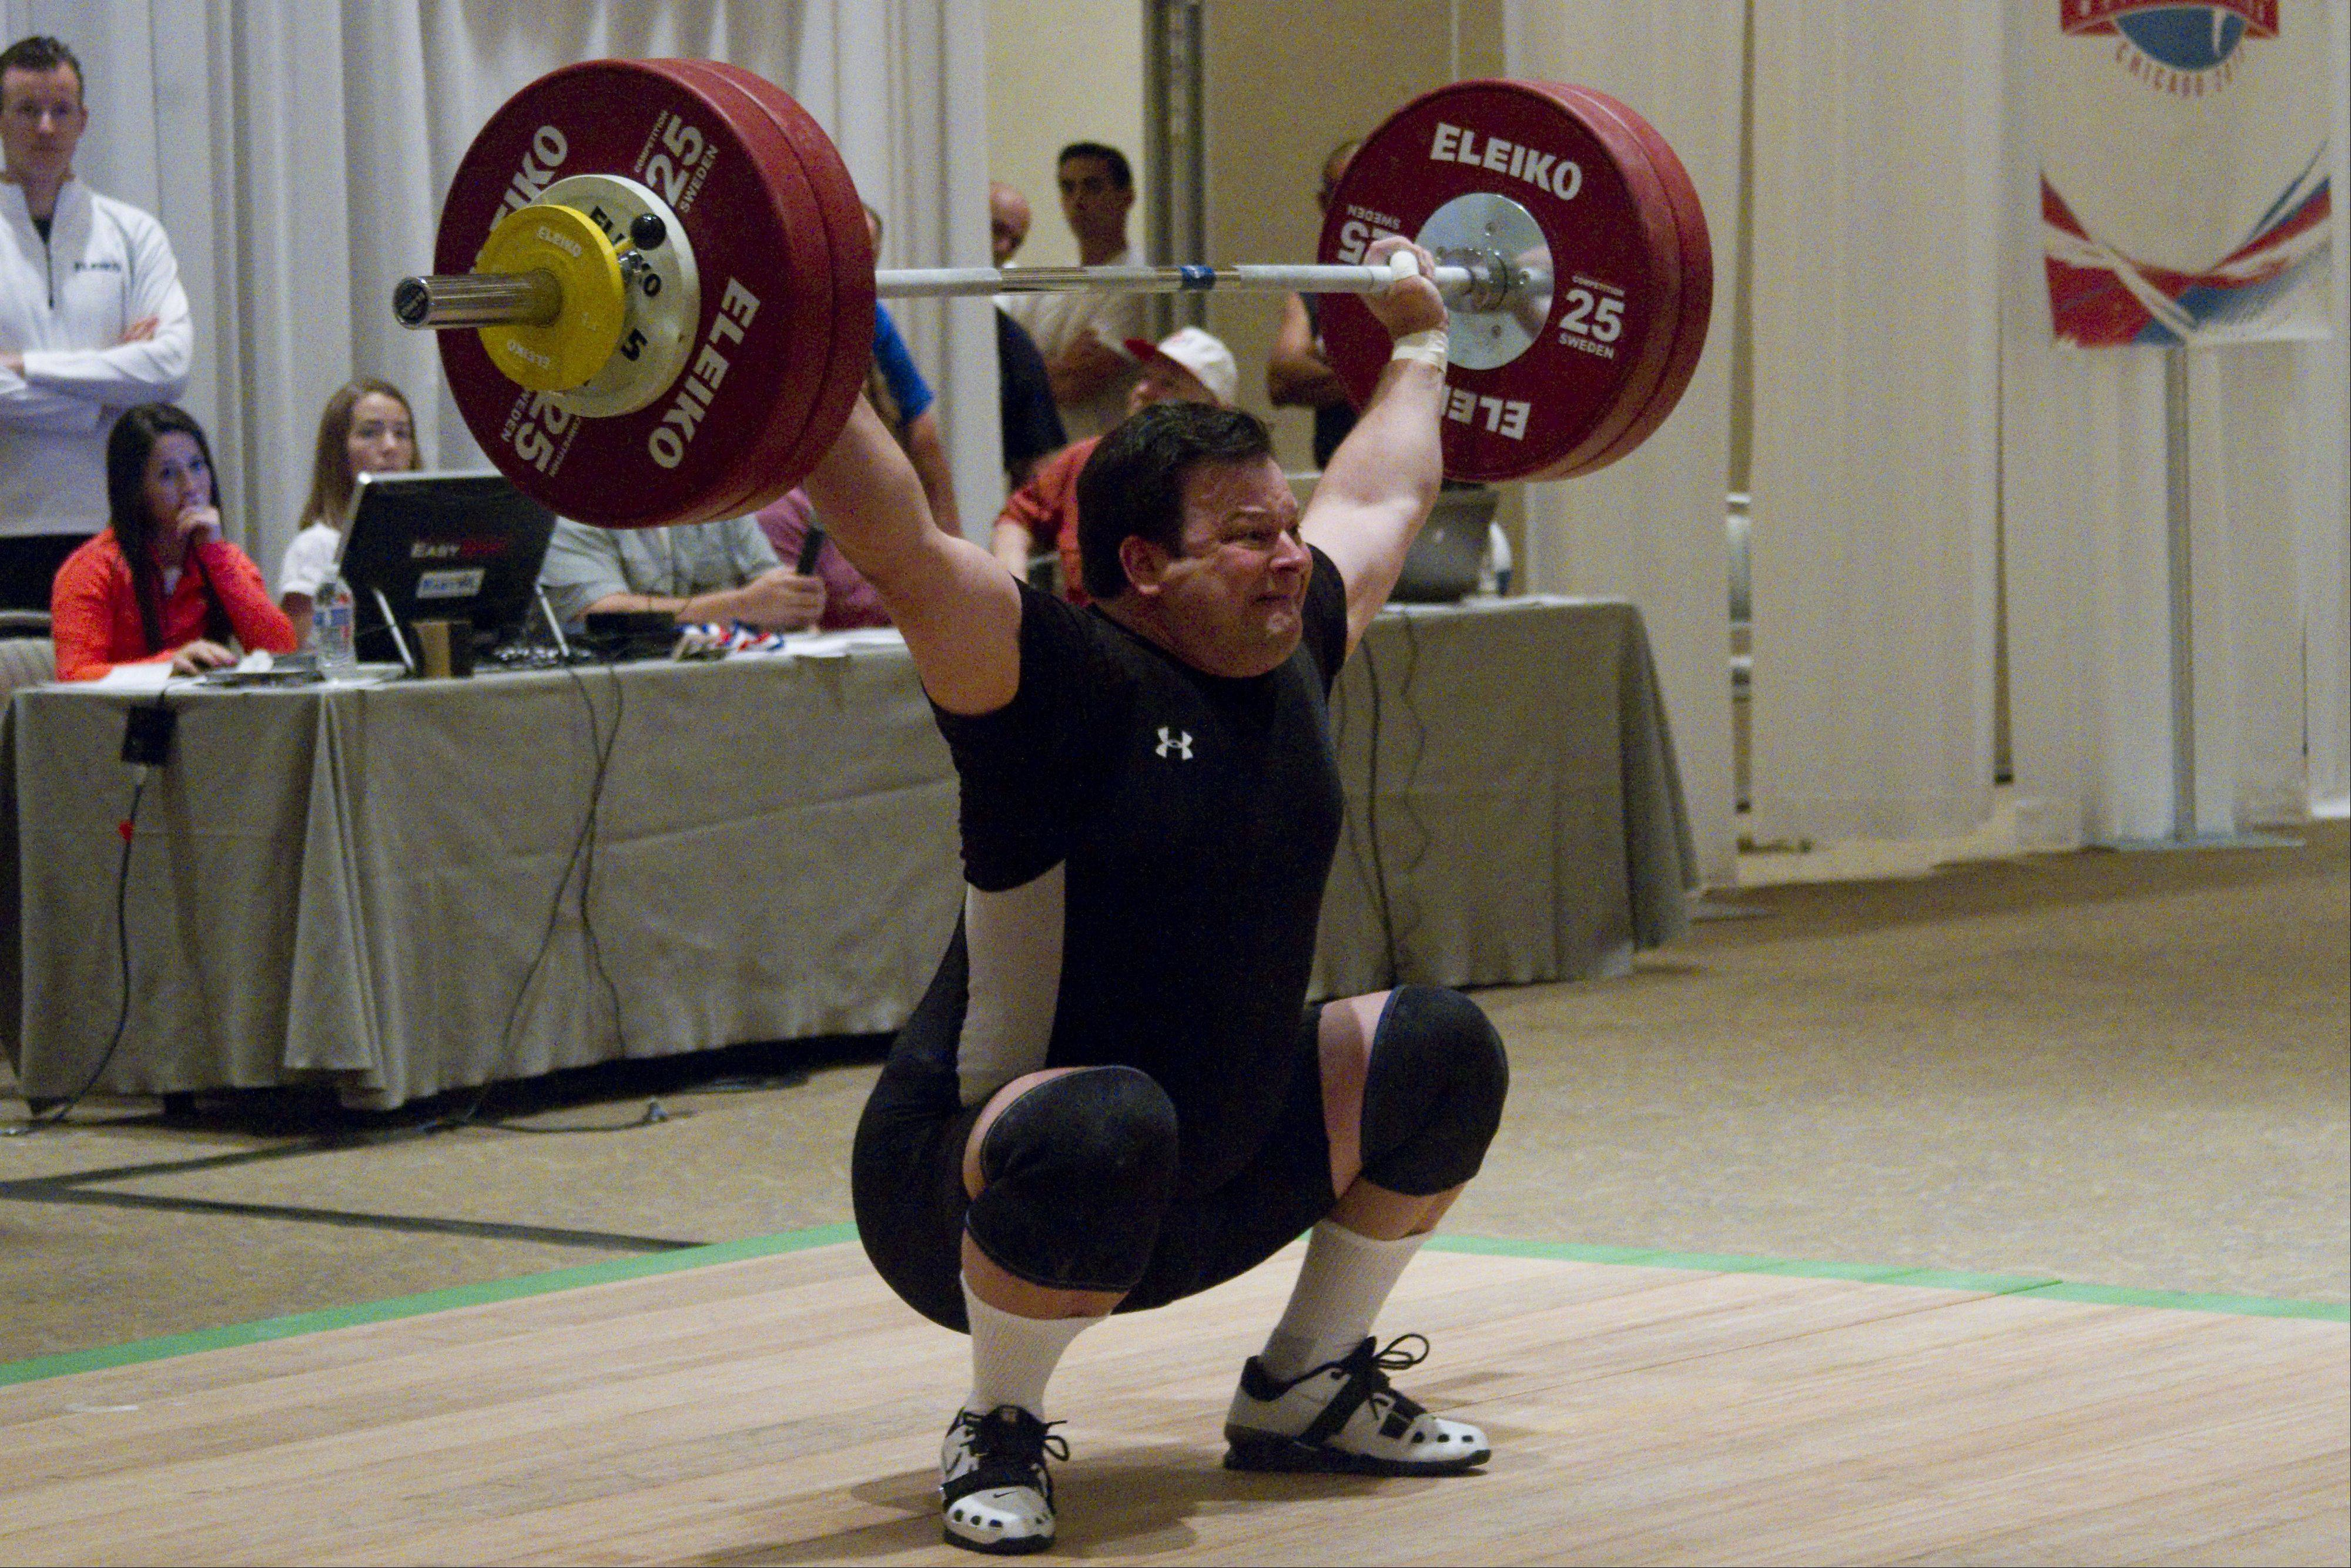 Rick Bucinell, a weightlifter representing the United States, attempts to lift 130 kilograms at the 2013 Pan American Masters Weightlifting Championships Sunday in Itasca.